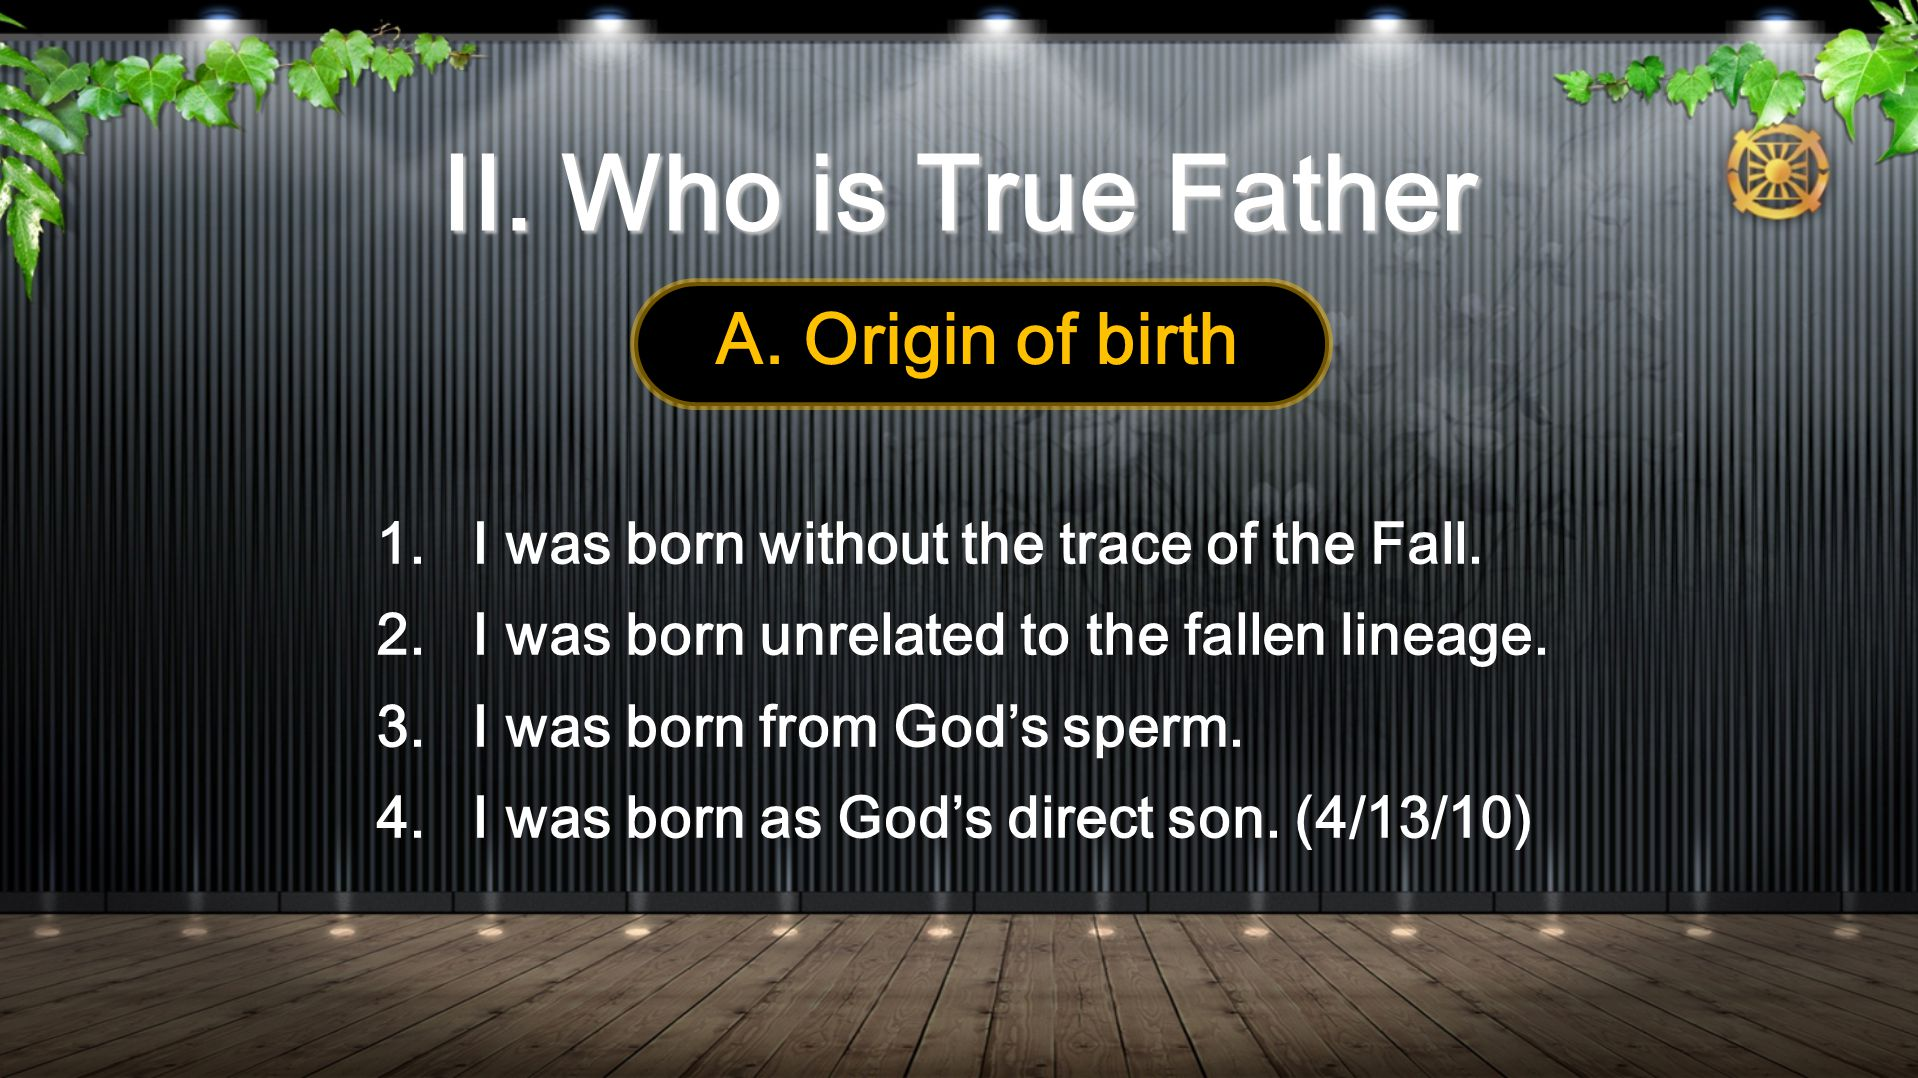 1.I was born without the trace of the Fall. 2.I was born unrelated to the fallen lineage.